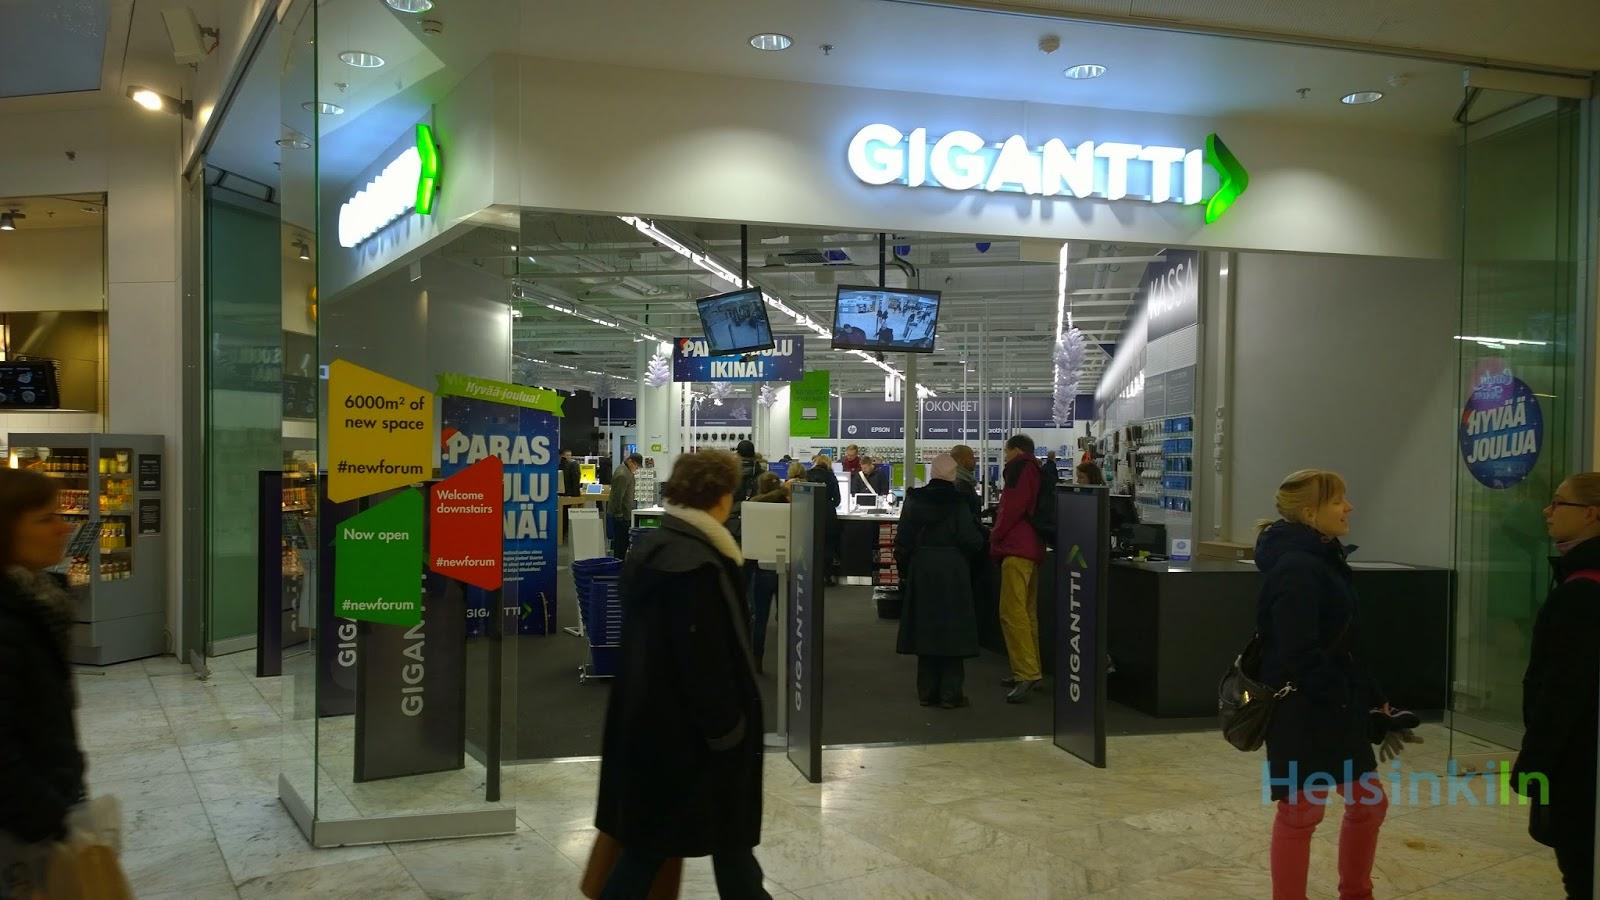 Gigantti at Forum